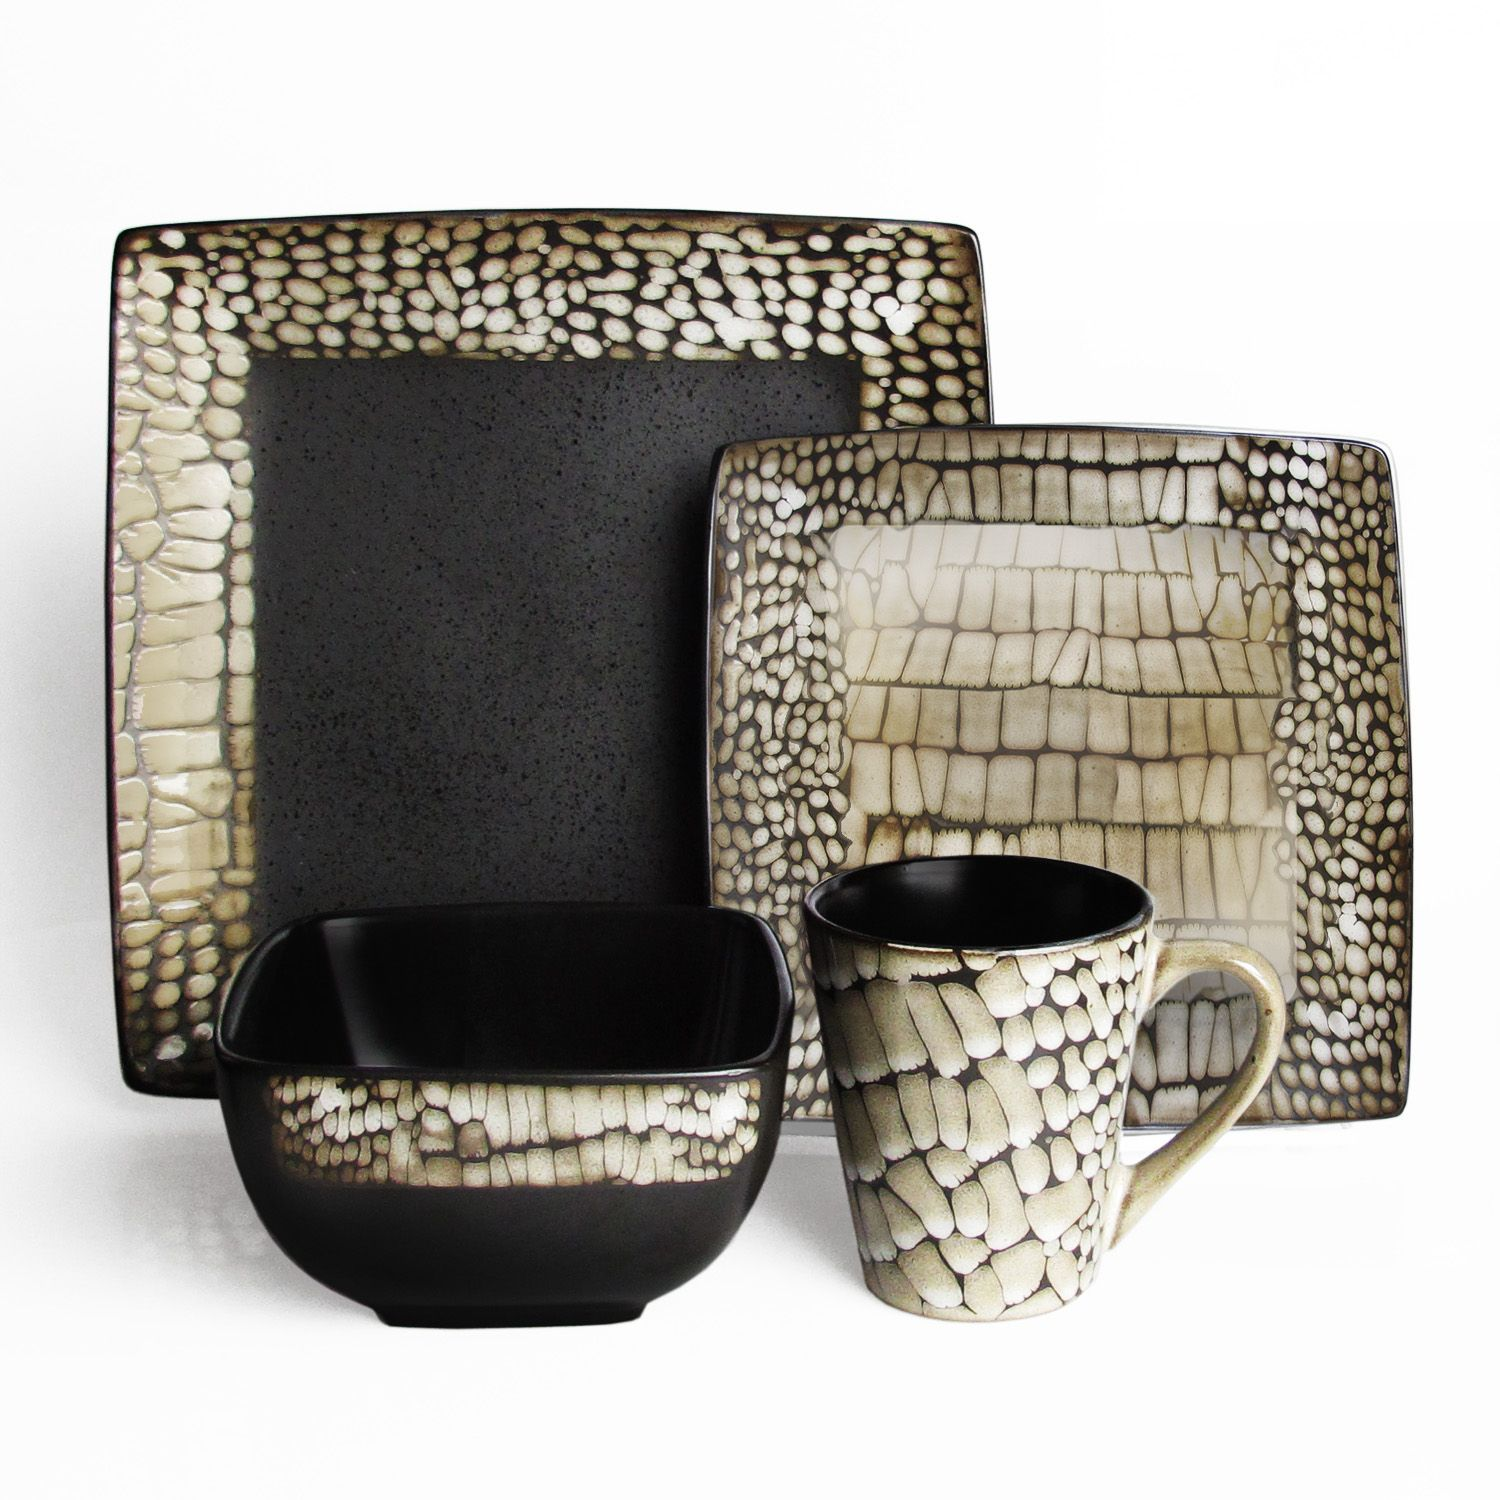 Enjoy this reactive glazed 16 pc dinner set from American Atelier. Known for it's fashion forward designs and quality craftsmanship, The Boa White American Atelier set will do wonders for all your casual dinnerware needs.